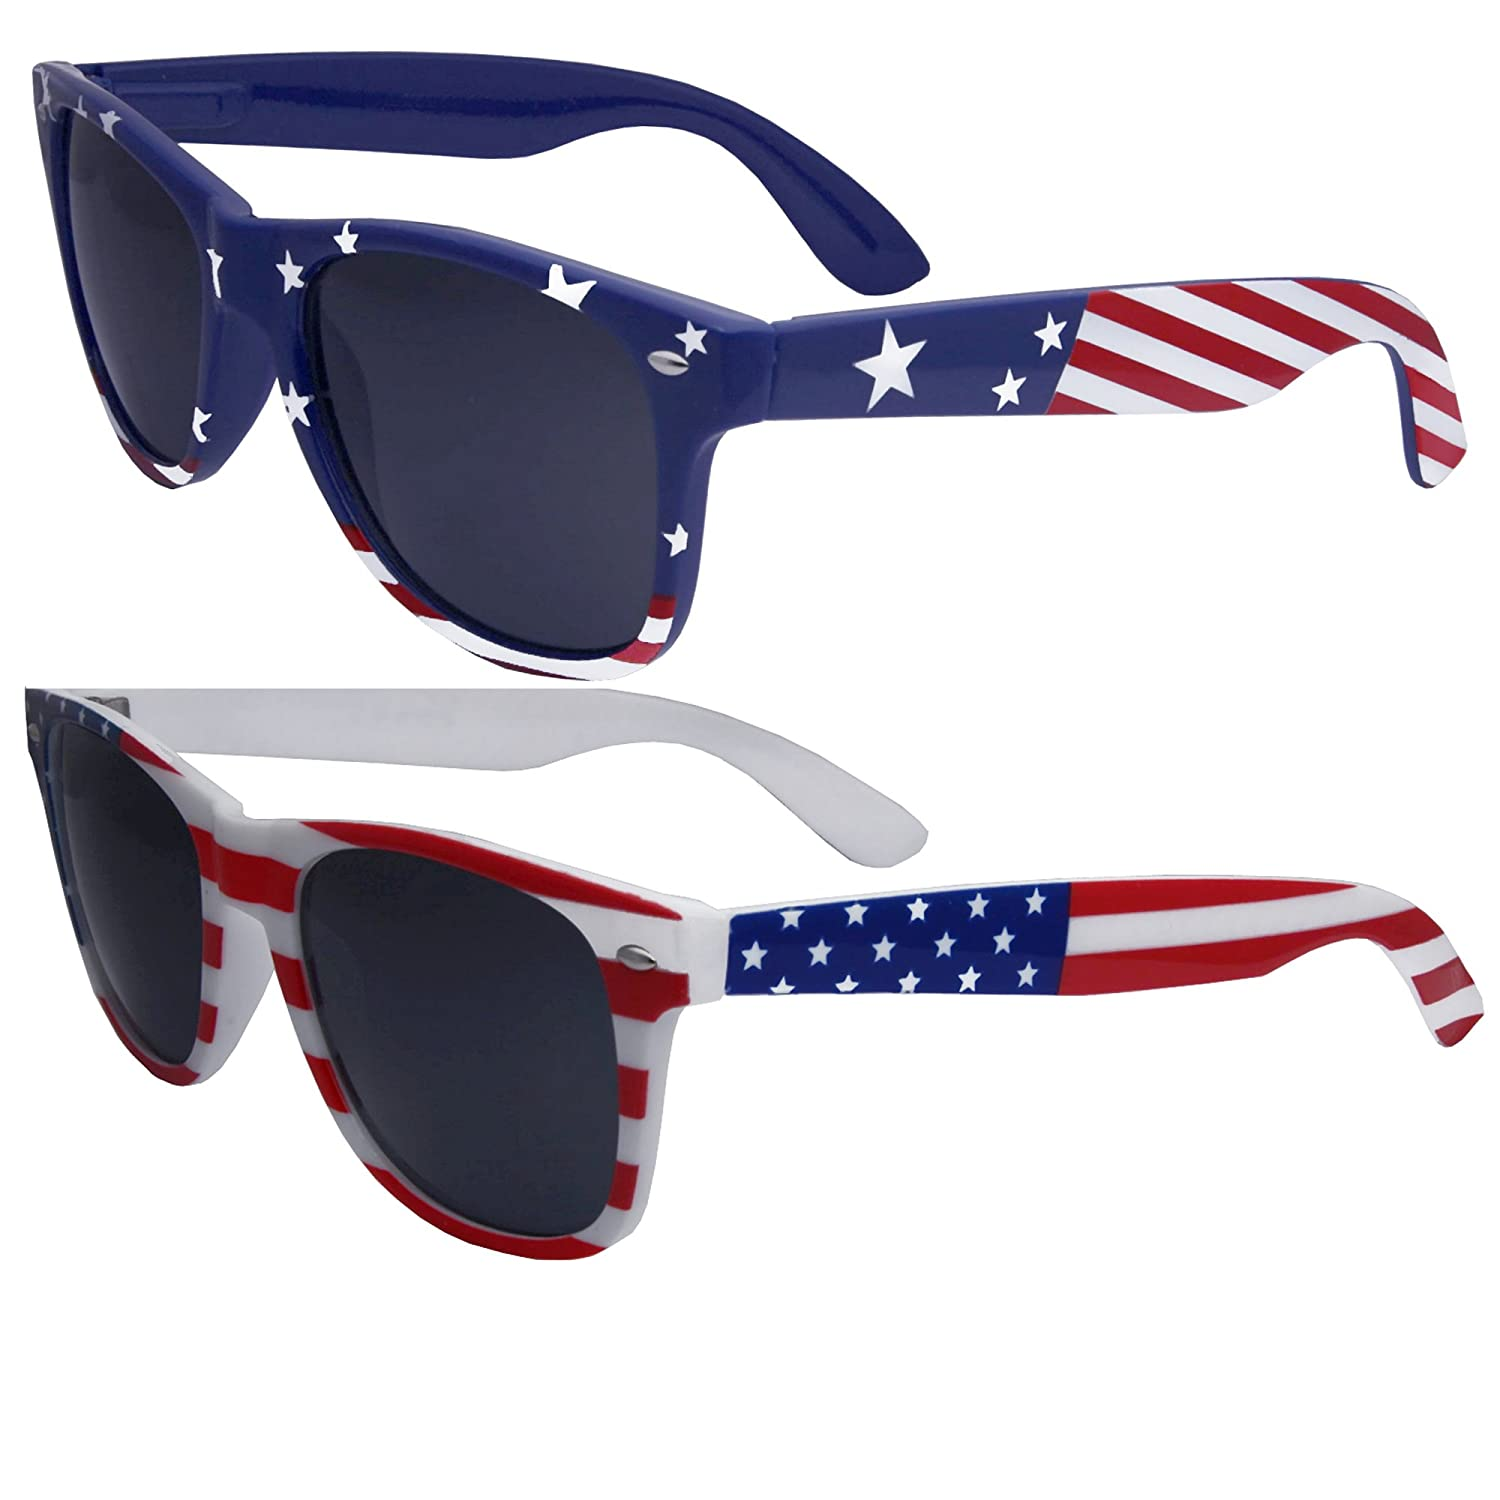 a2185f92f247 Top 10 wholesale Flag Frame - Chinabrands.com